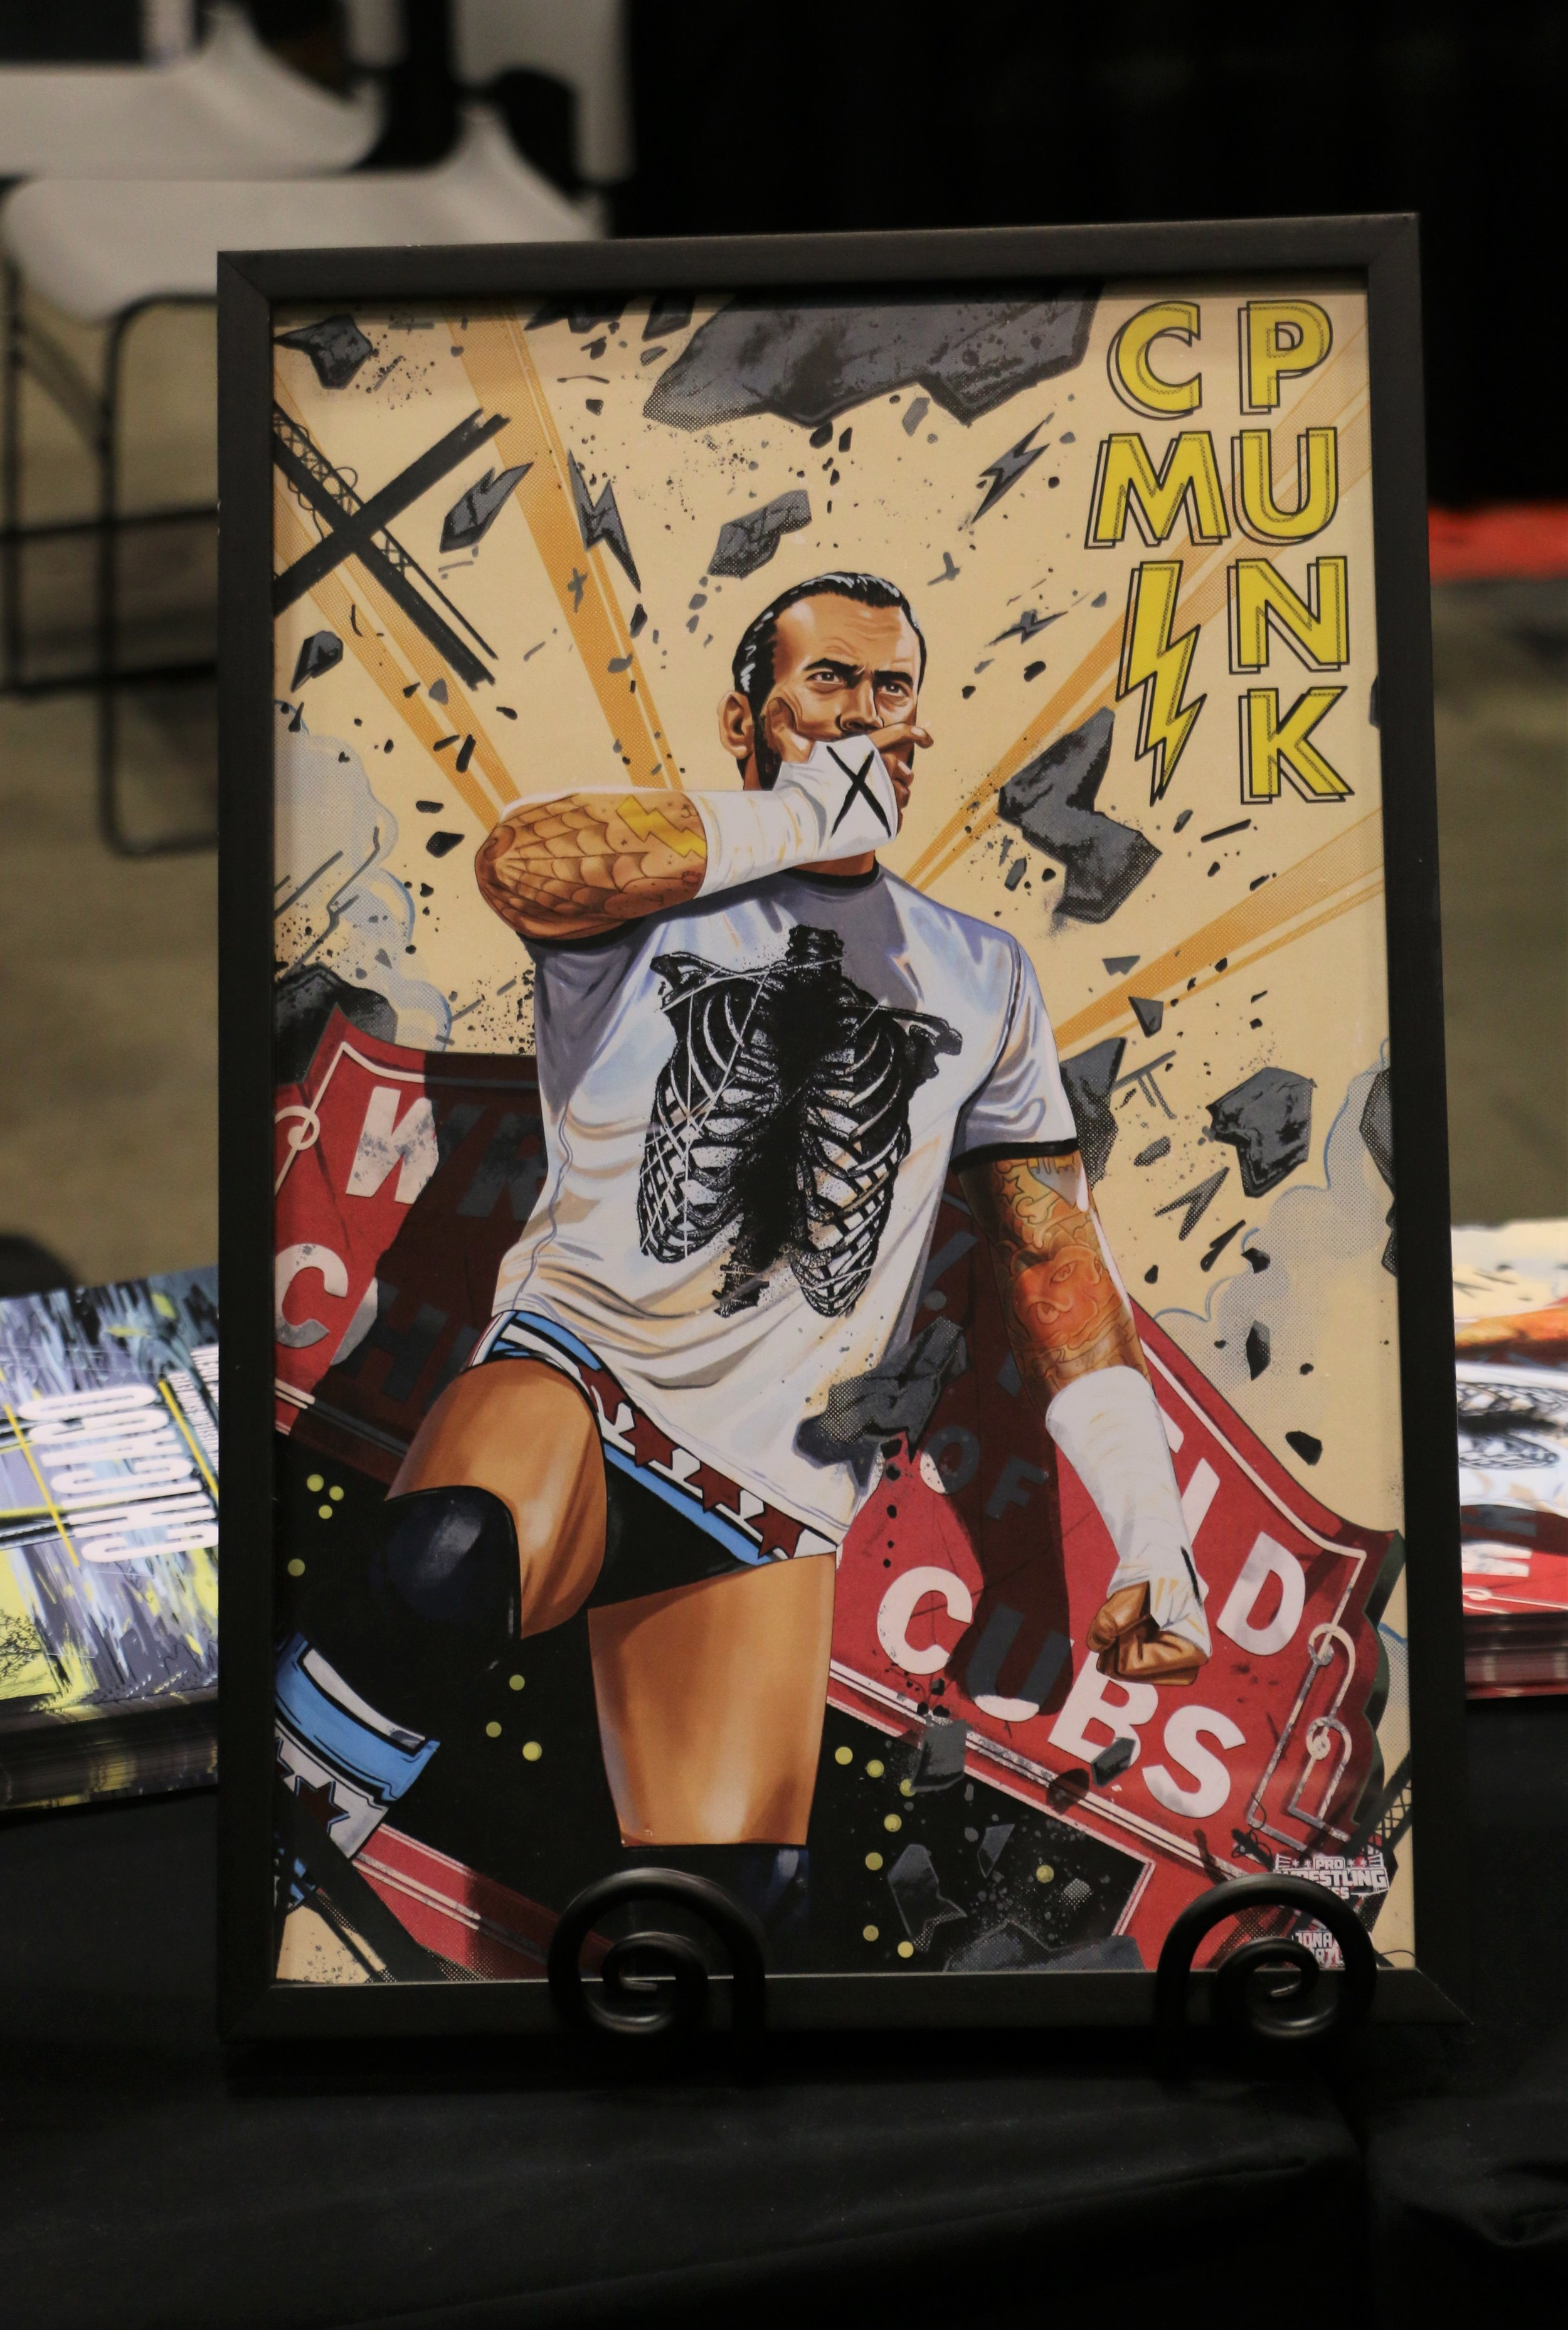 CM Punk portrait at the Pro Wrestling Tees booth.